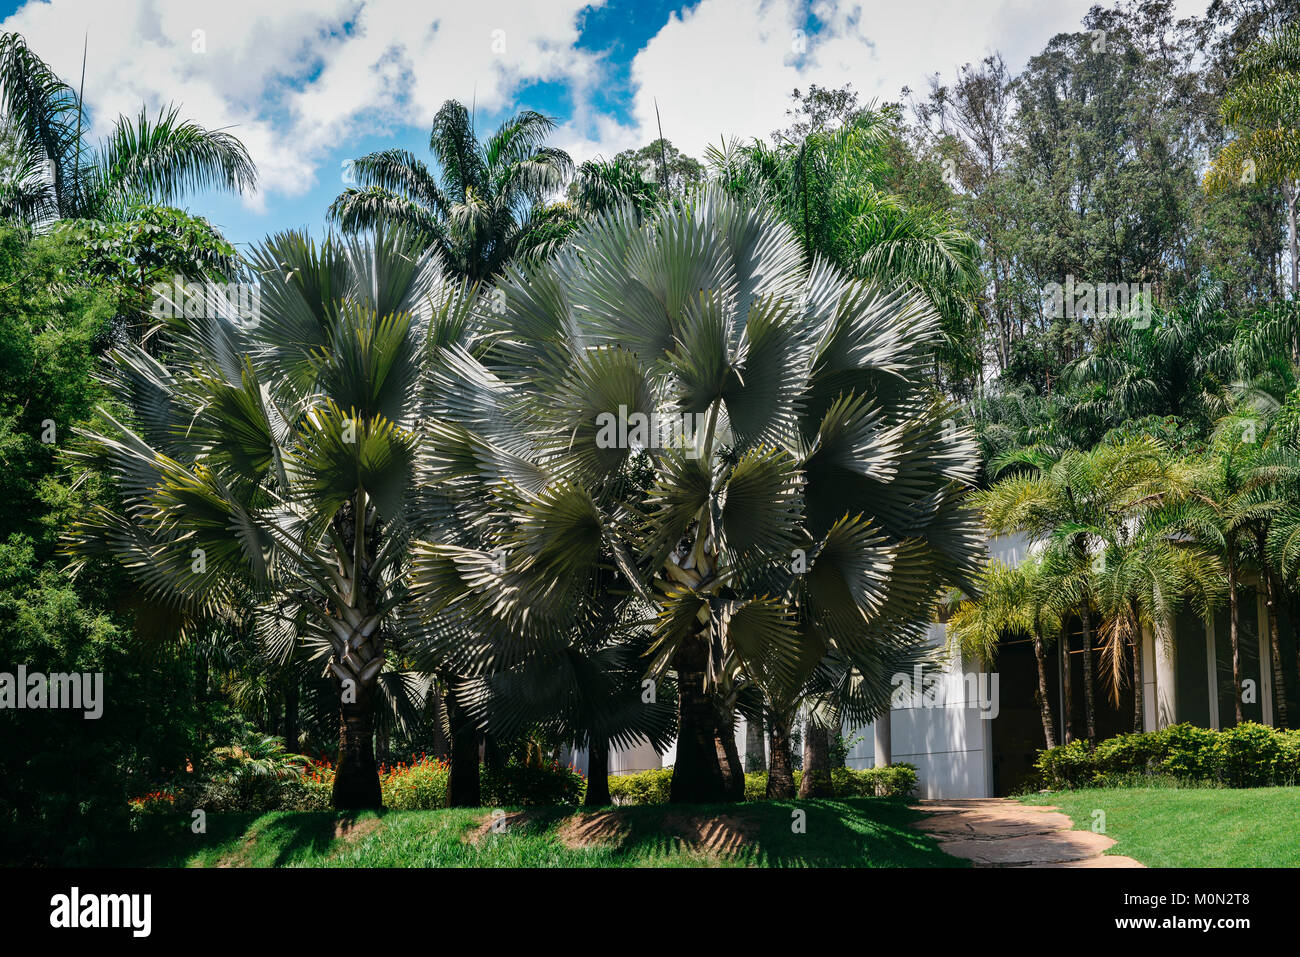 Inhotim Institute is a museum and contemporary art museum as well as a botanic garden located in Brumadinho in the Stock Photo